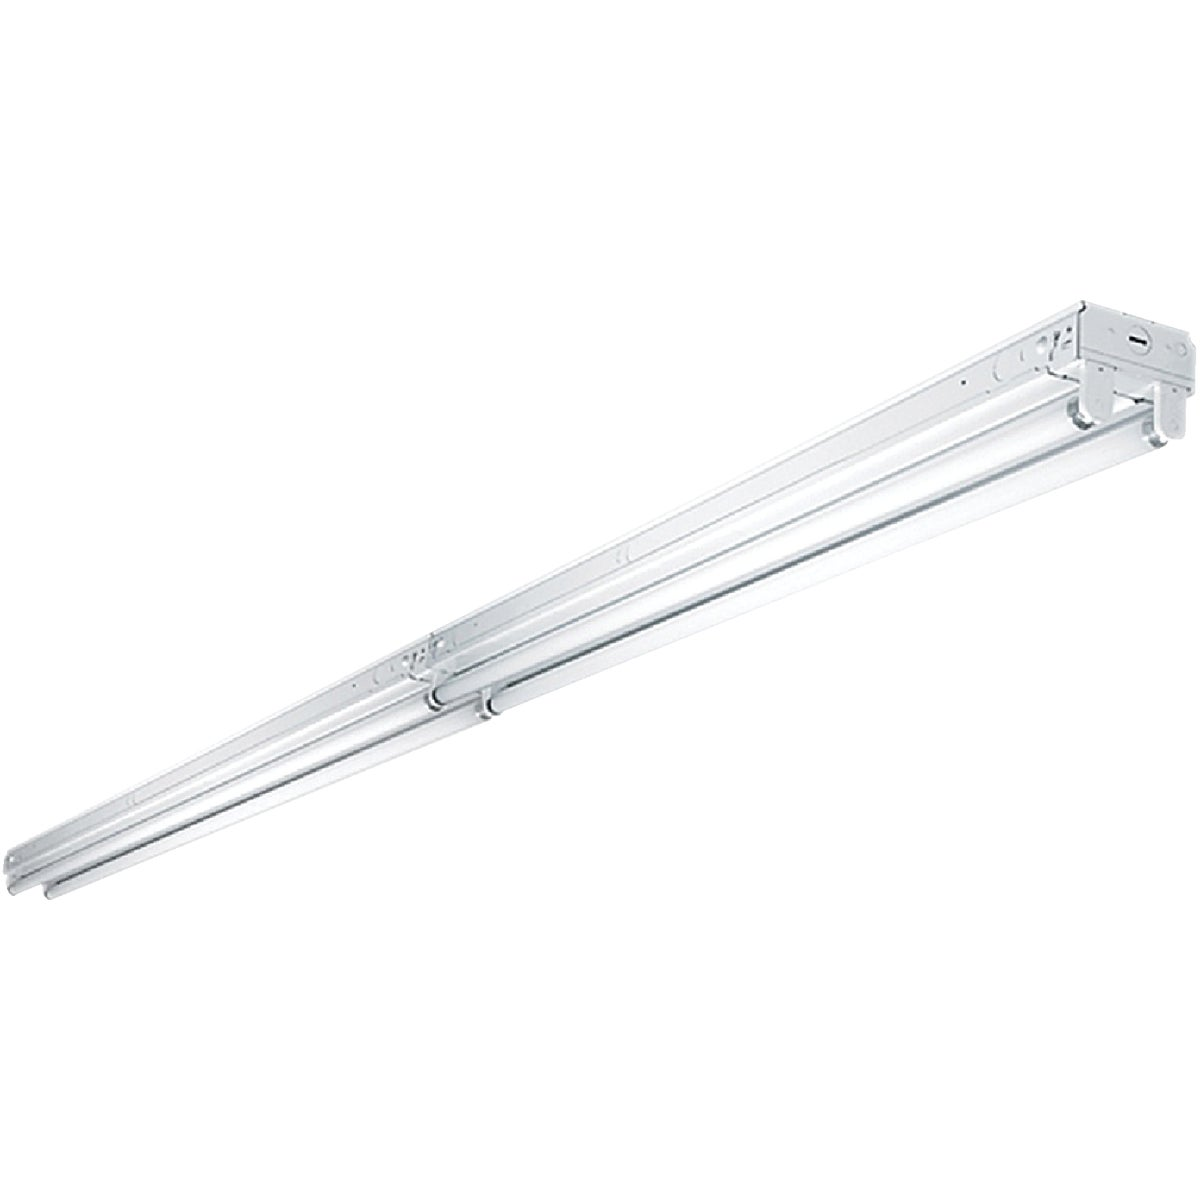 8' T8 4BULB STRIP LIGHT - TC2321201/4GESB by Lithonia Lighting